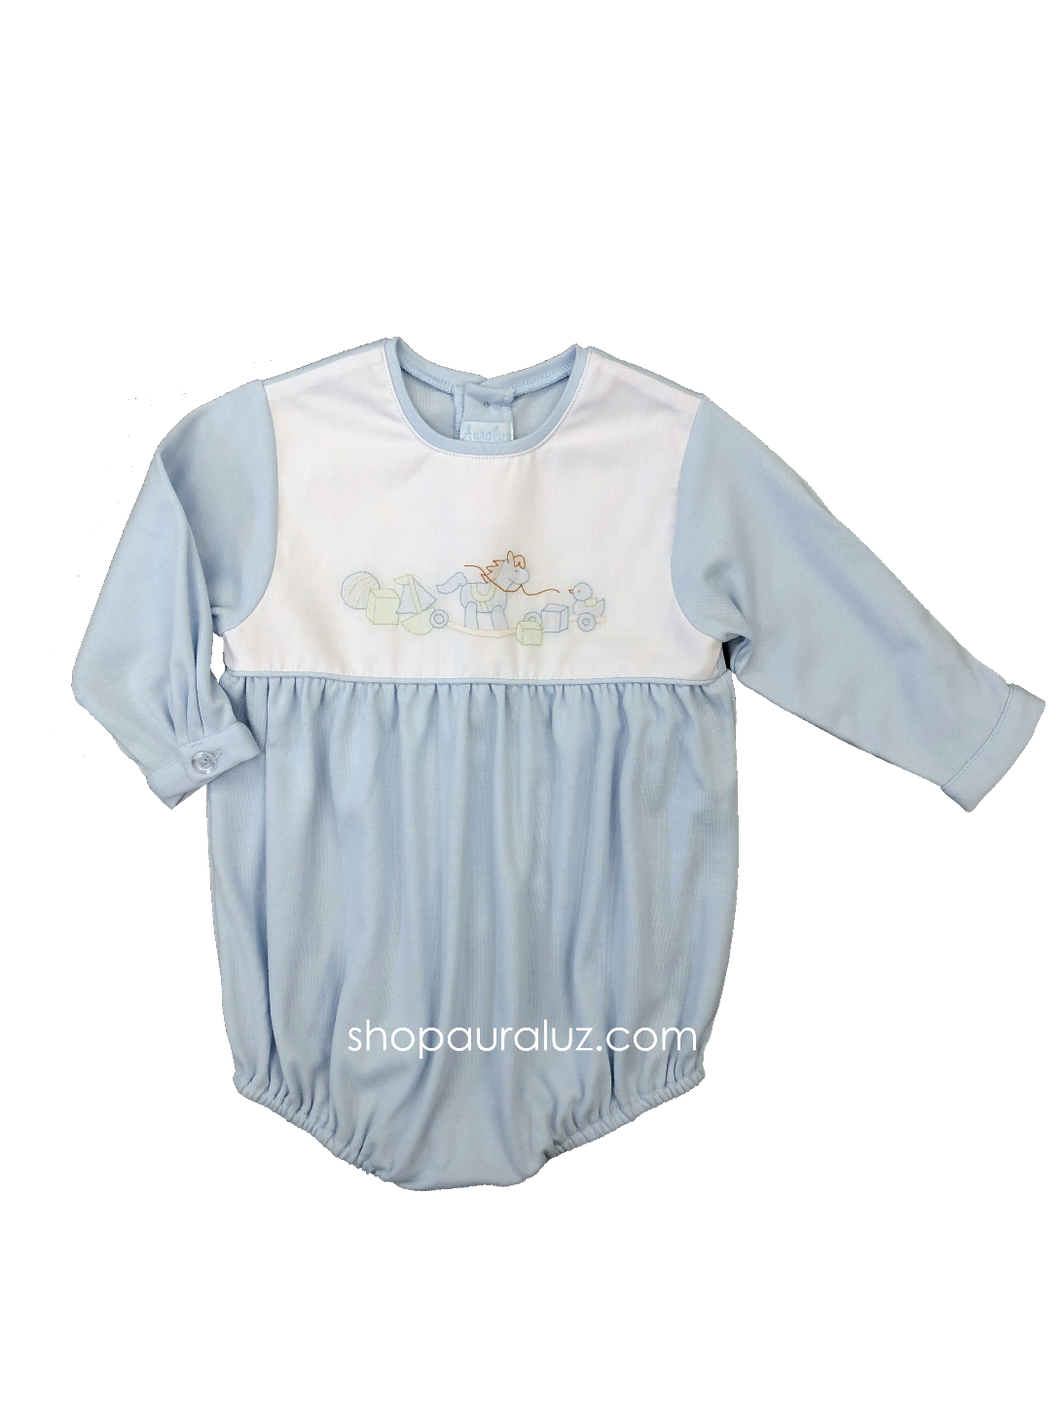 Auraluz Knit Bubble l/s...Blue with no collar and embroidered rocking horse